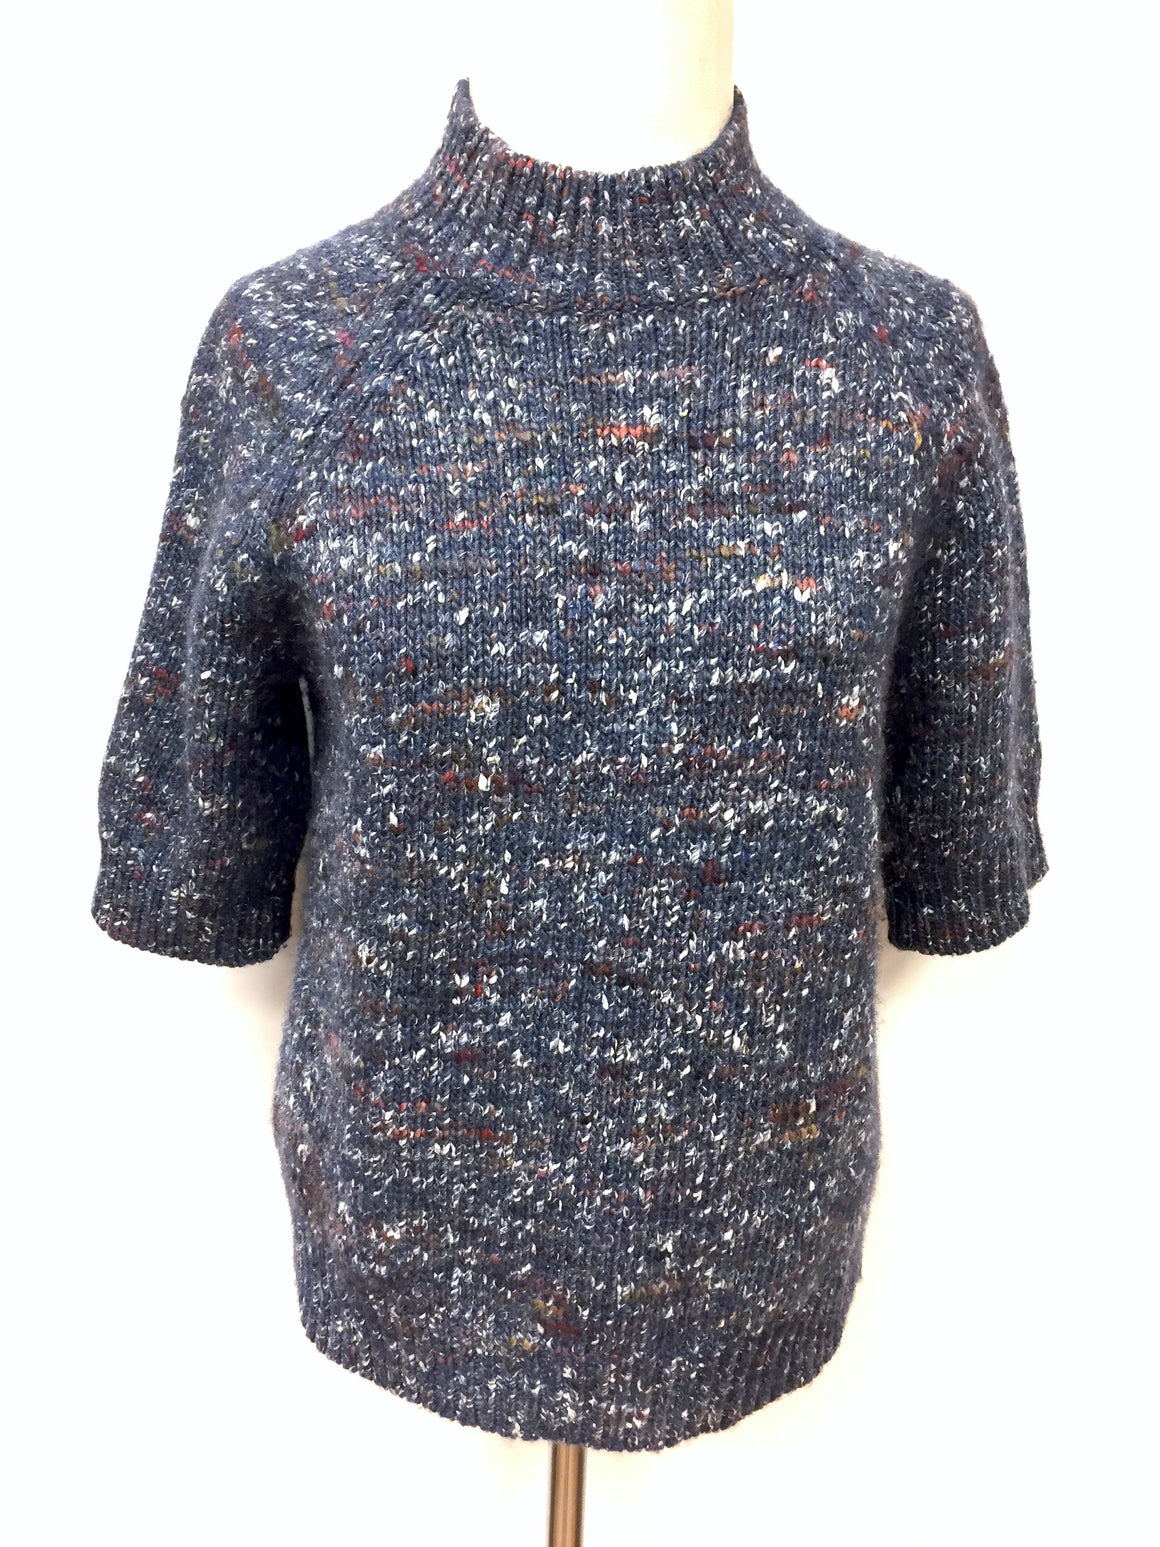 THEORY Slate-Blue/Multicolor Marled Wool & Wil Short-Sleeve Sweater Top SzL